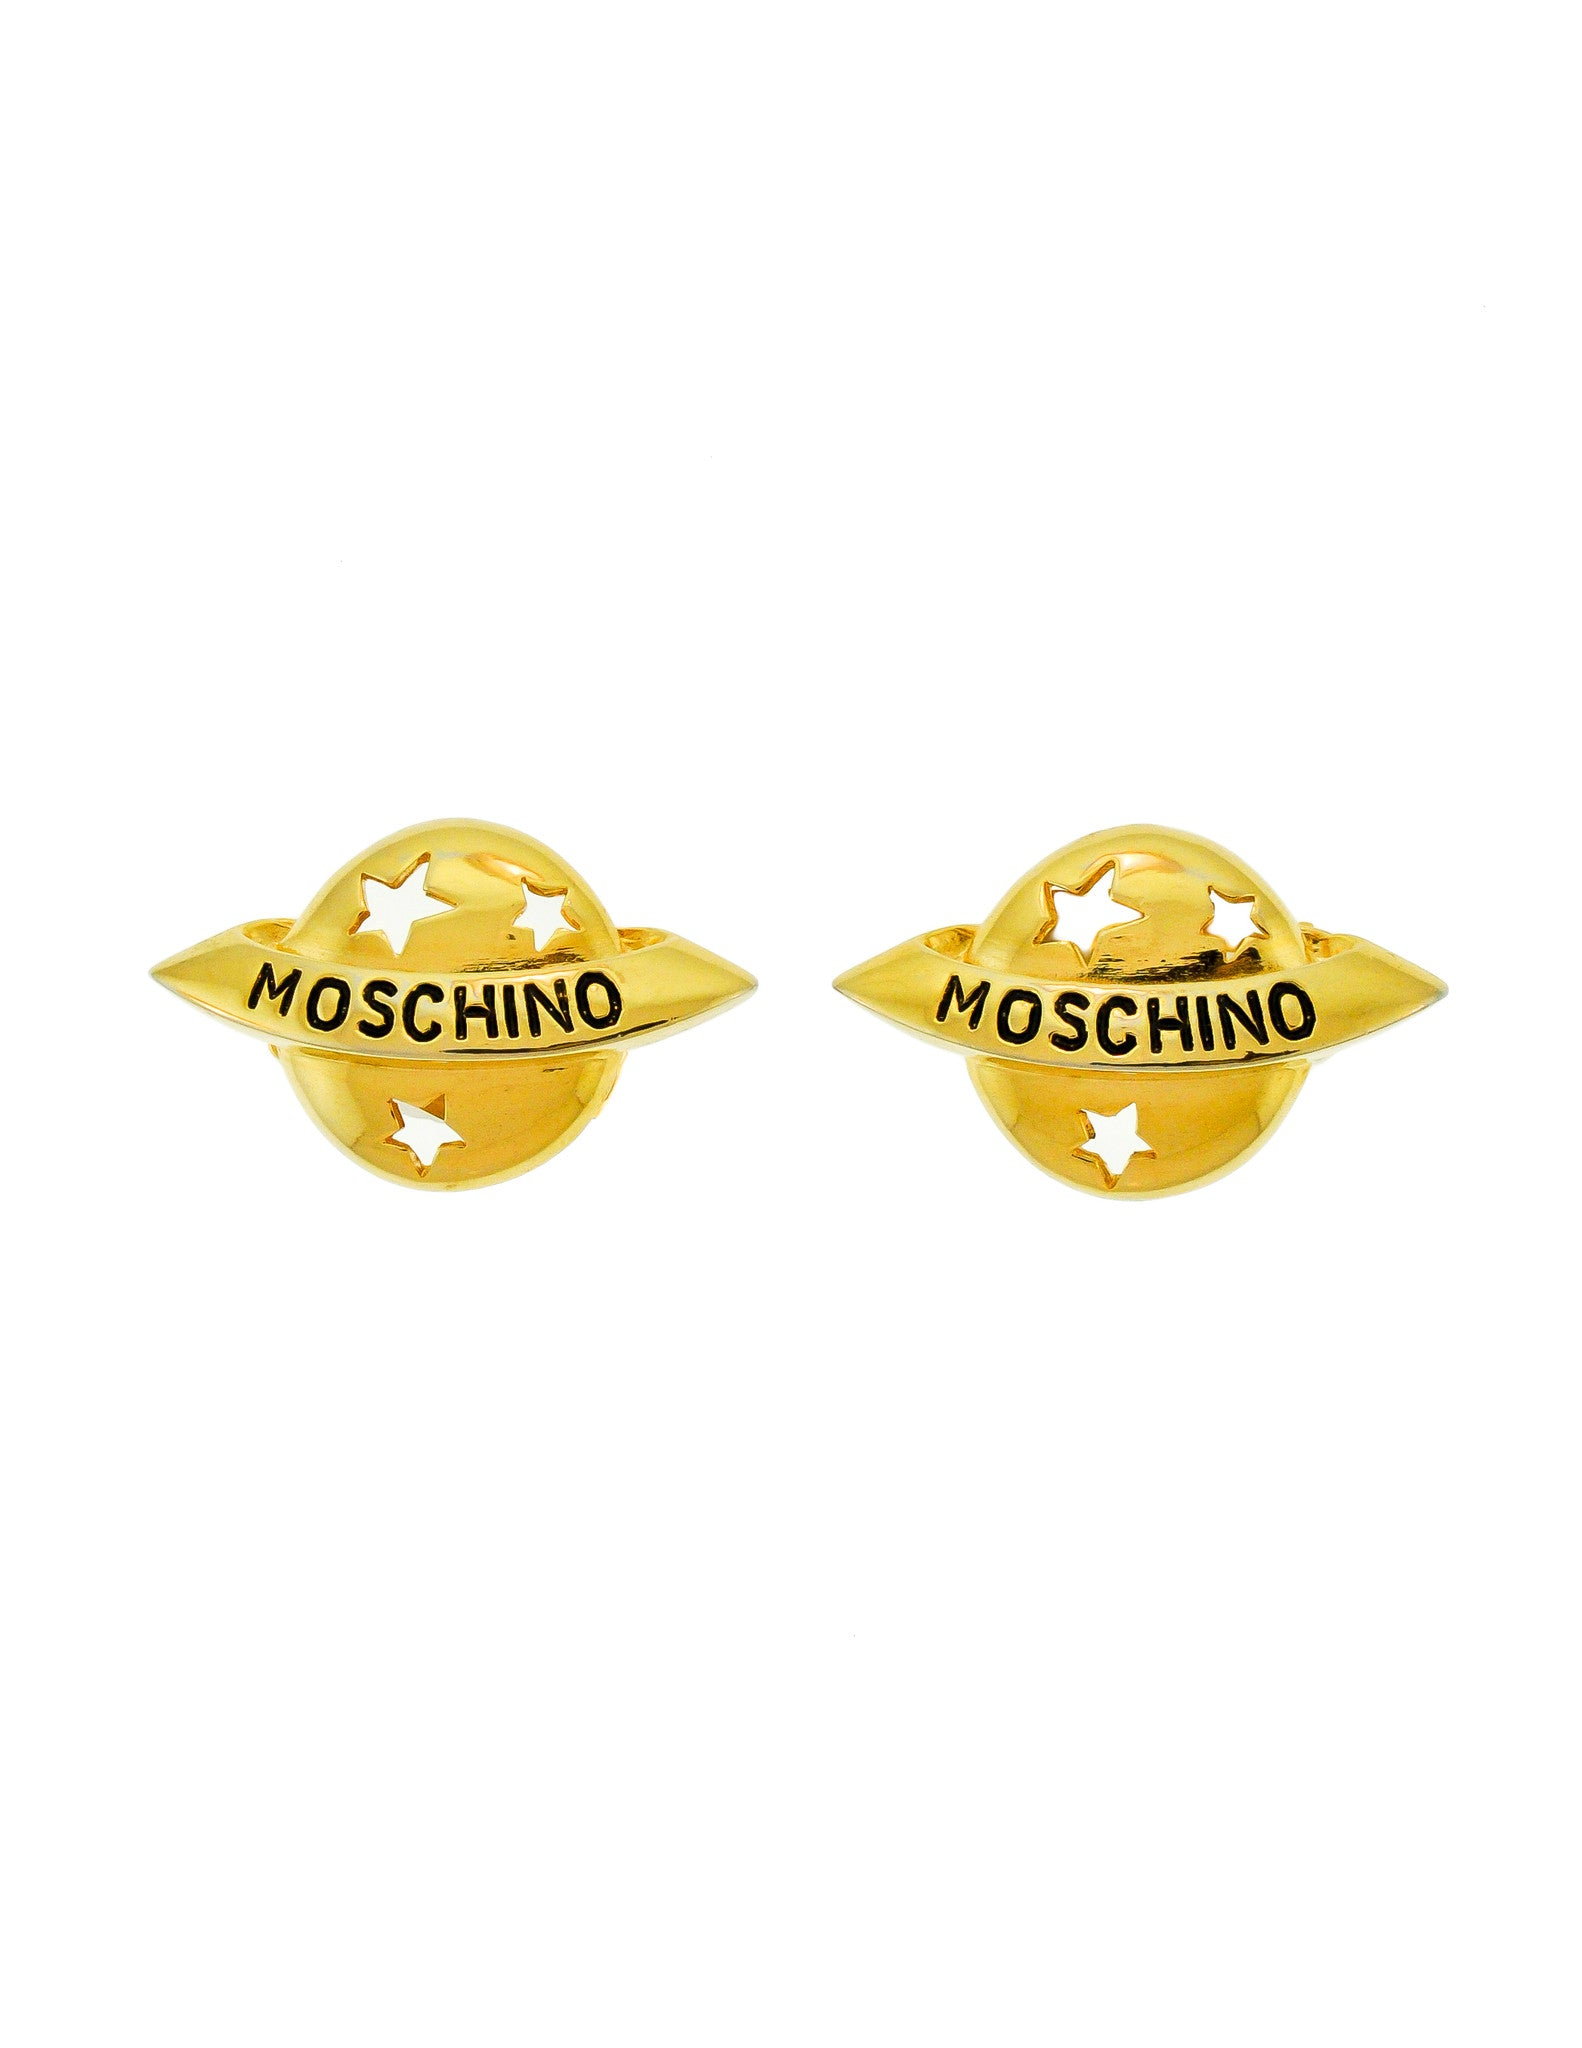 Moschino Vintage Gold Star Saturn Planet Earrings - Amarcord Vintage Fashion  - 1